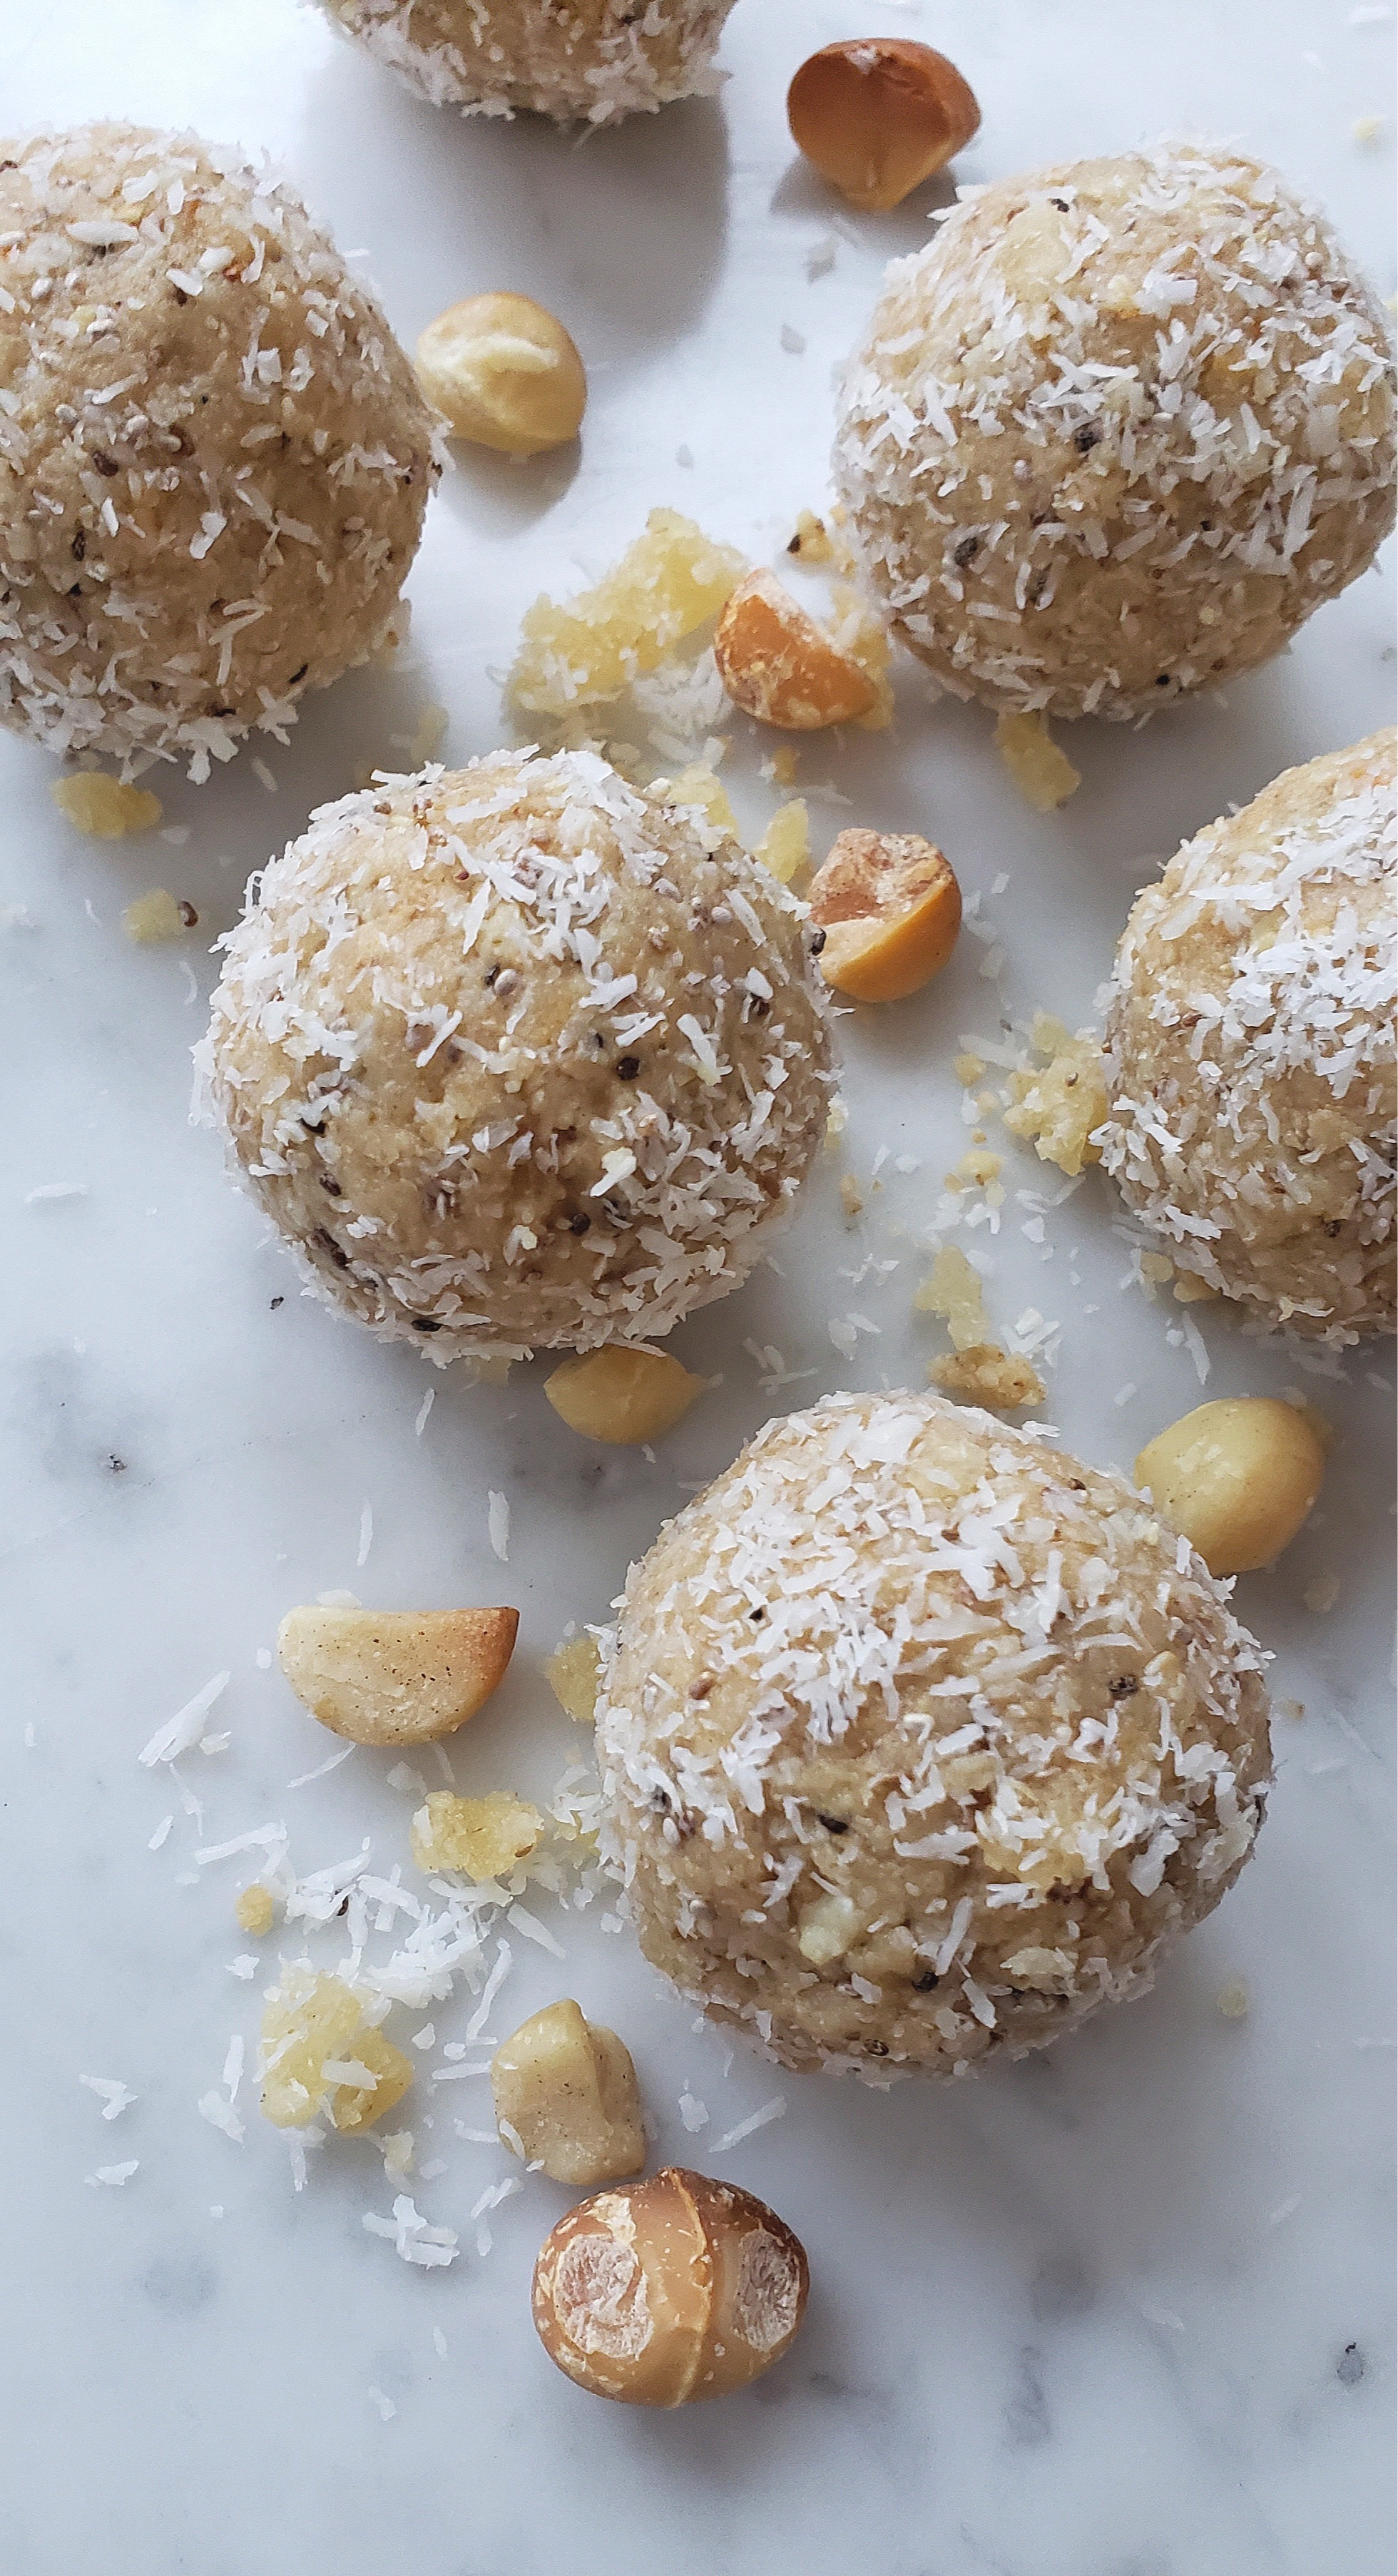 TROPICAL+PROTEIN+BALLS+WITH+MACADAMIA+NUTS.jpg